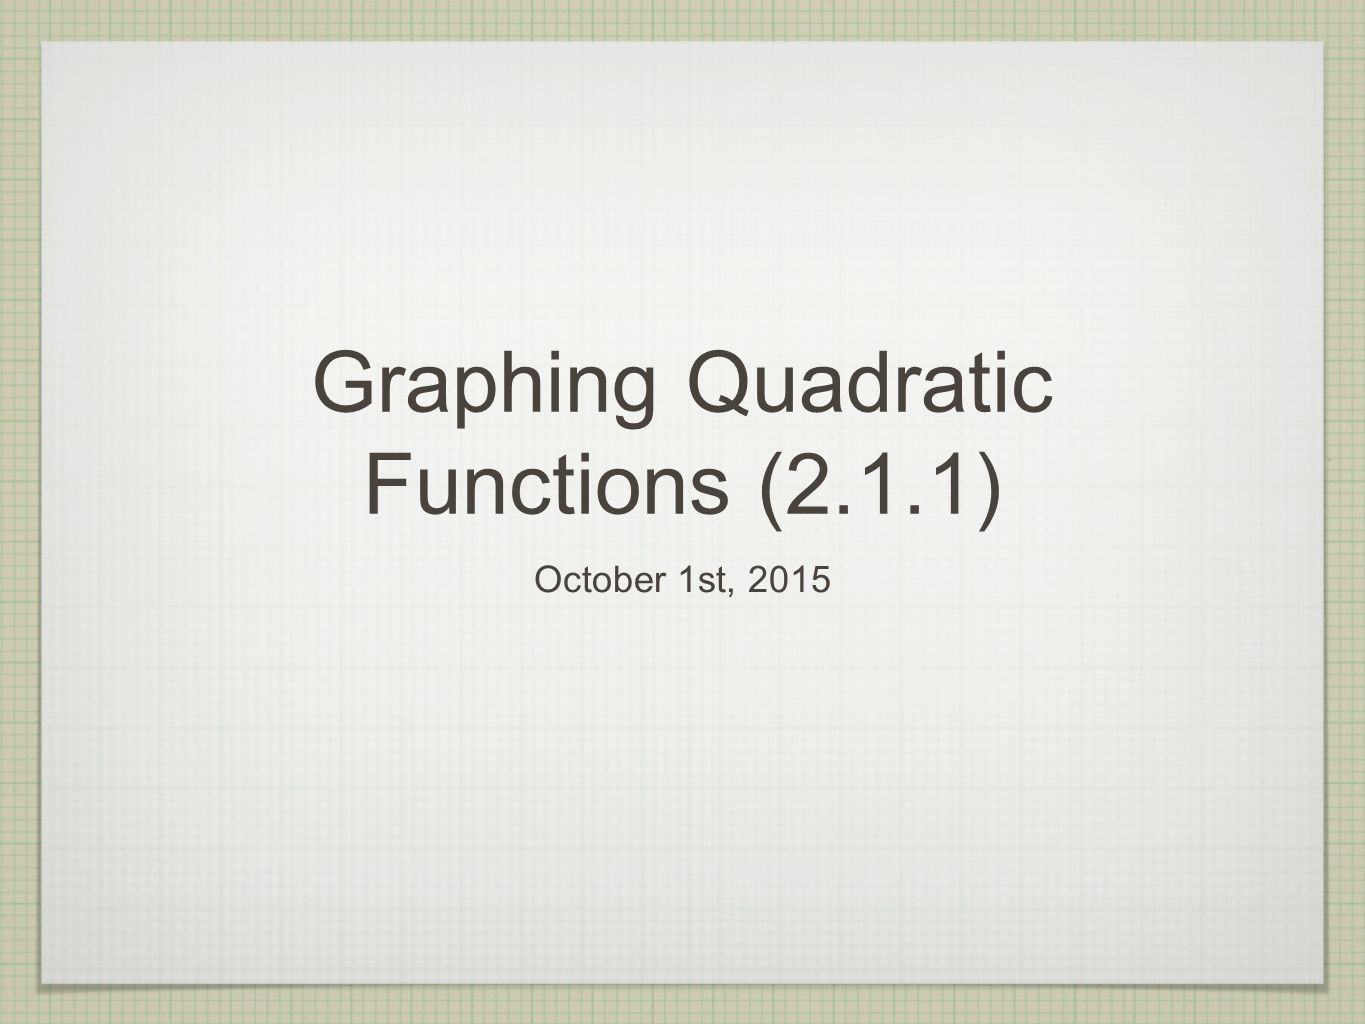 Graphing Quadratic Functions (2.1.1) October 1st, 2015